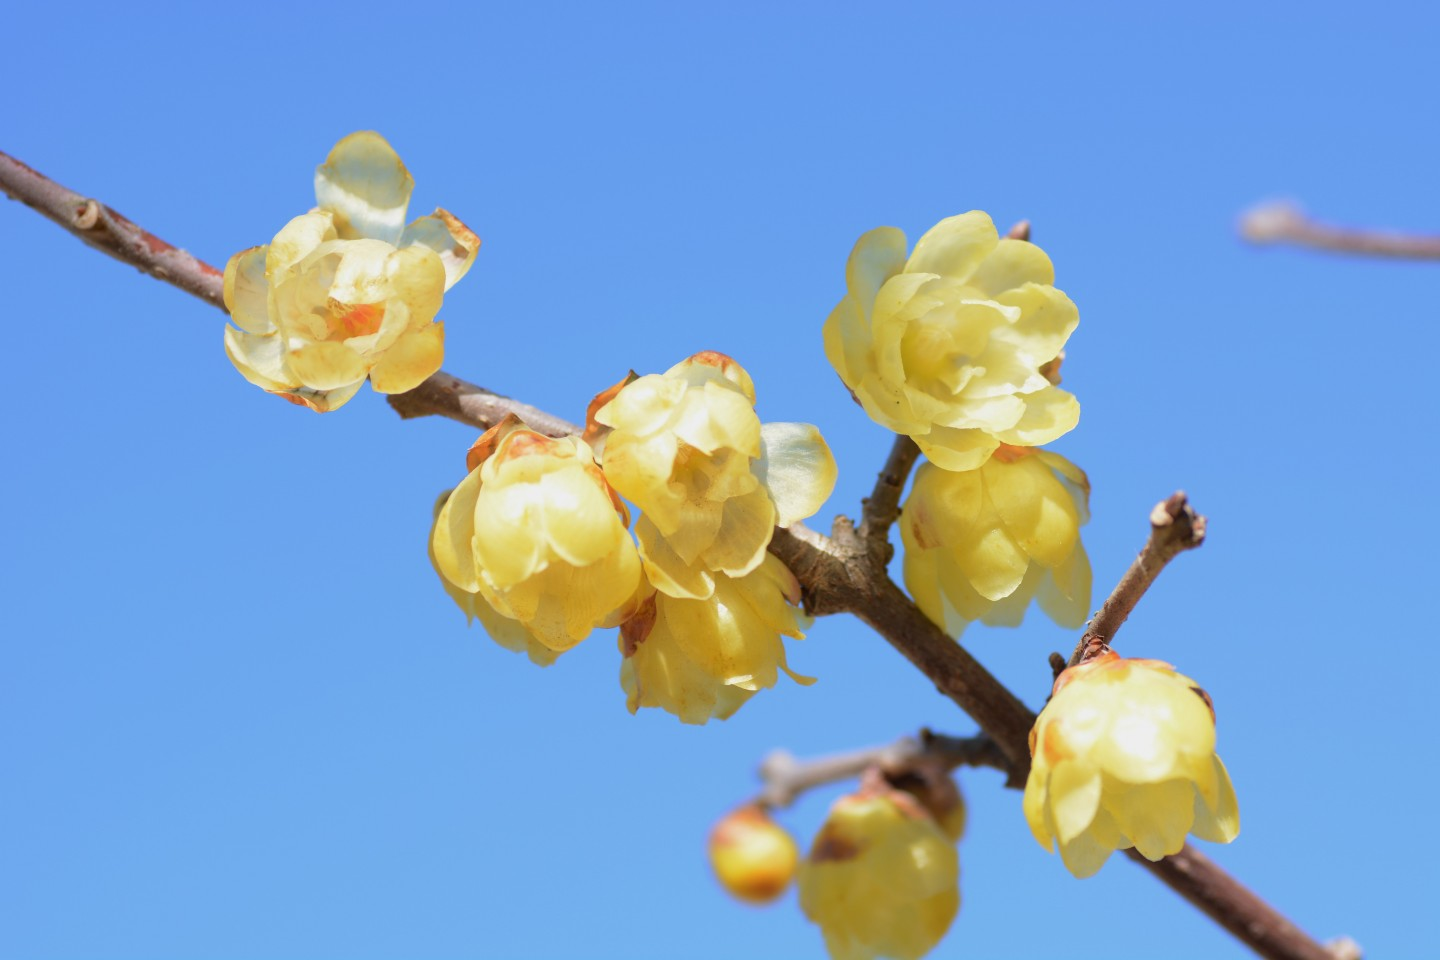 Wintersweet flowers peeked out of their stems like clusters of small bells sculpted from yellow wax. (iStock)